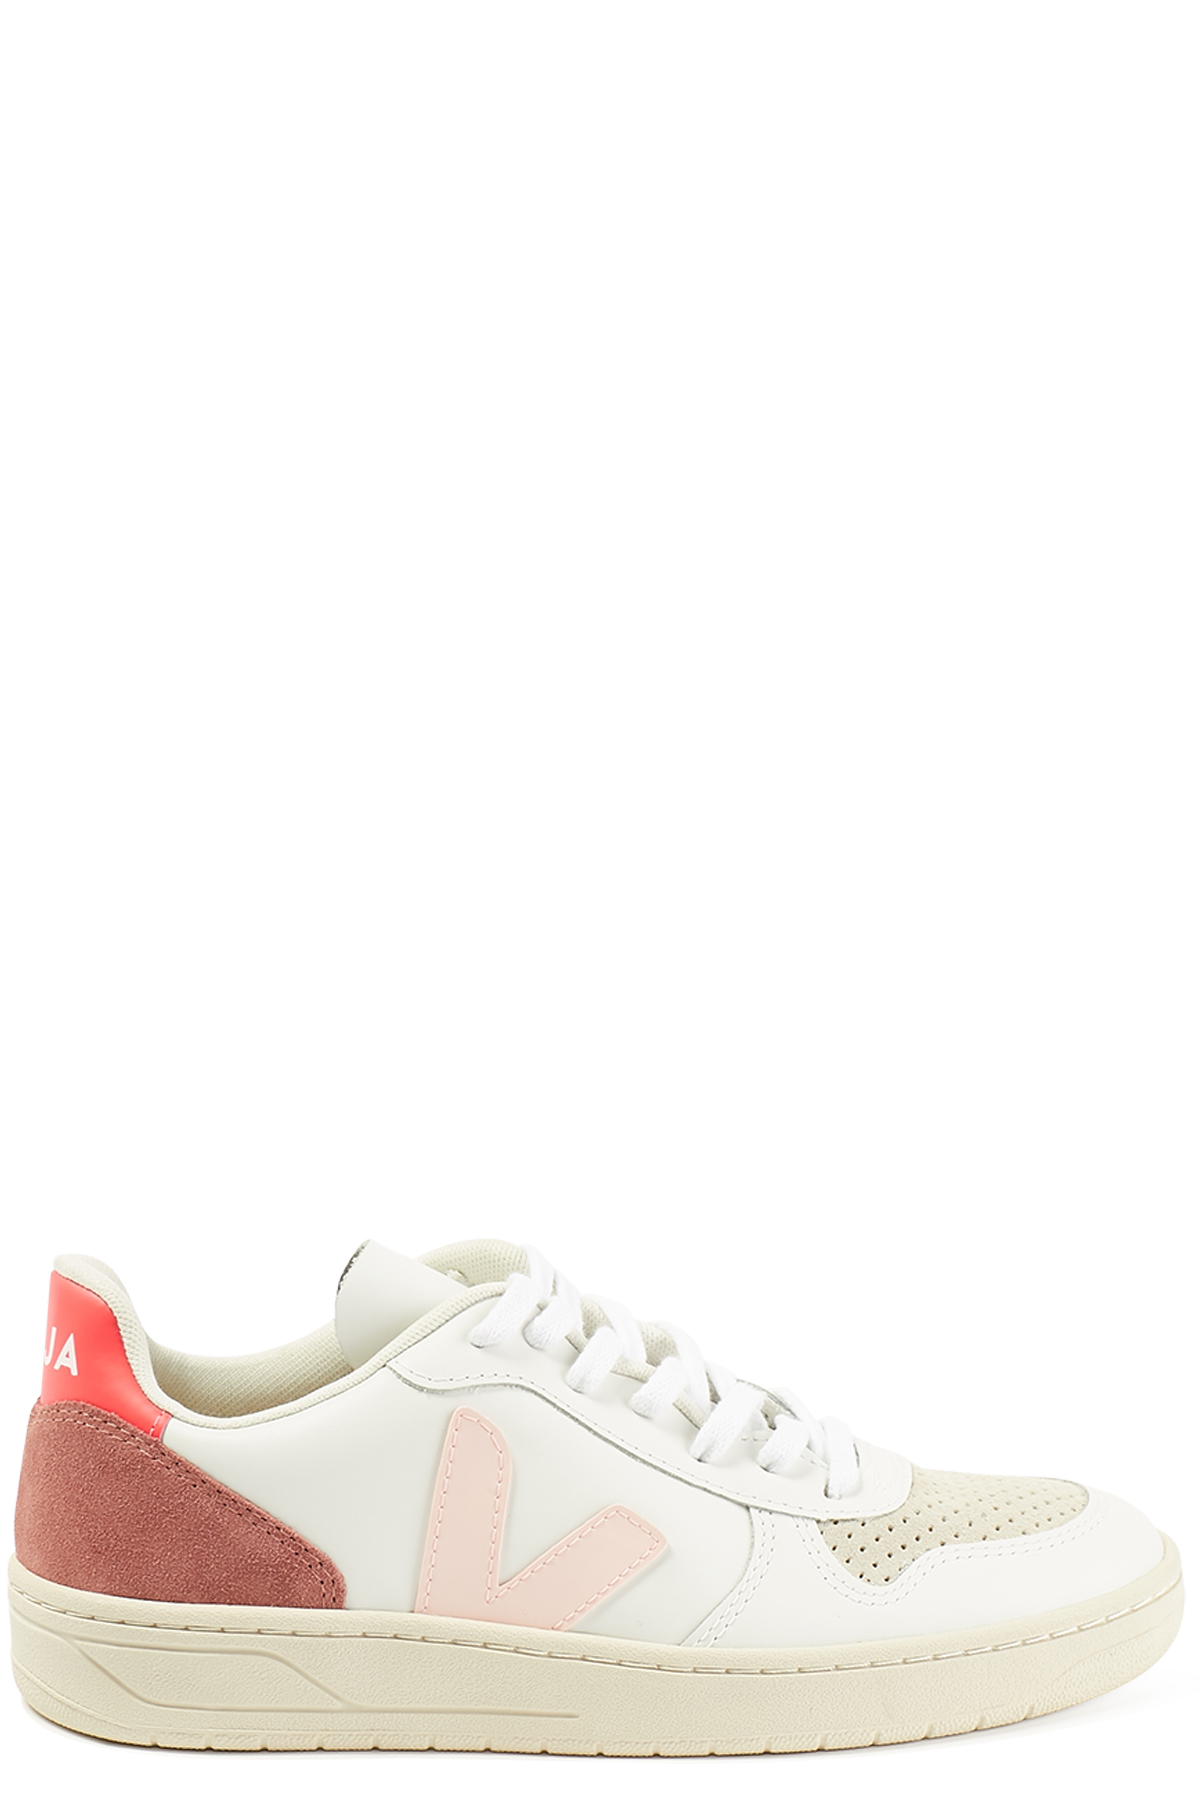 Sneakers Extra White Petale Rose Fluo